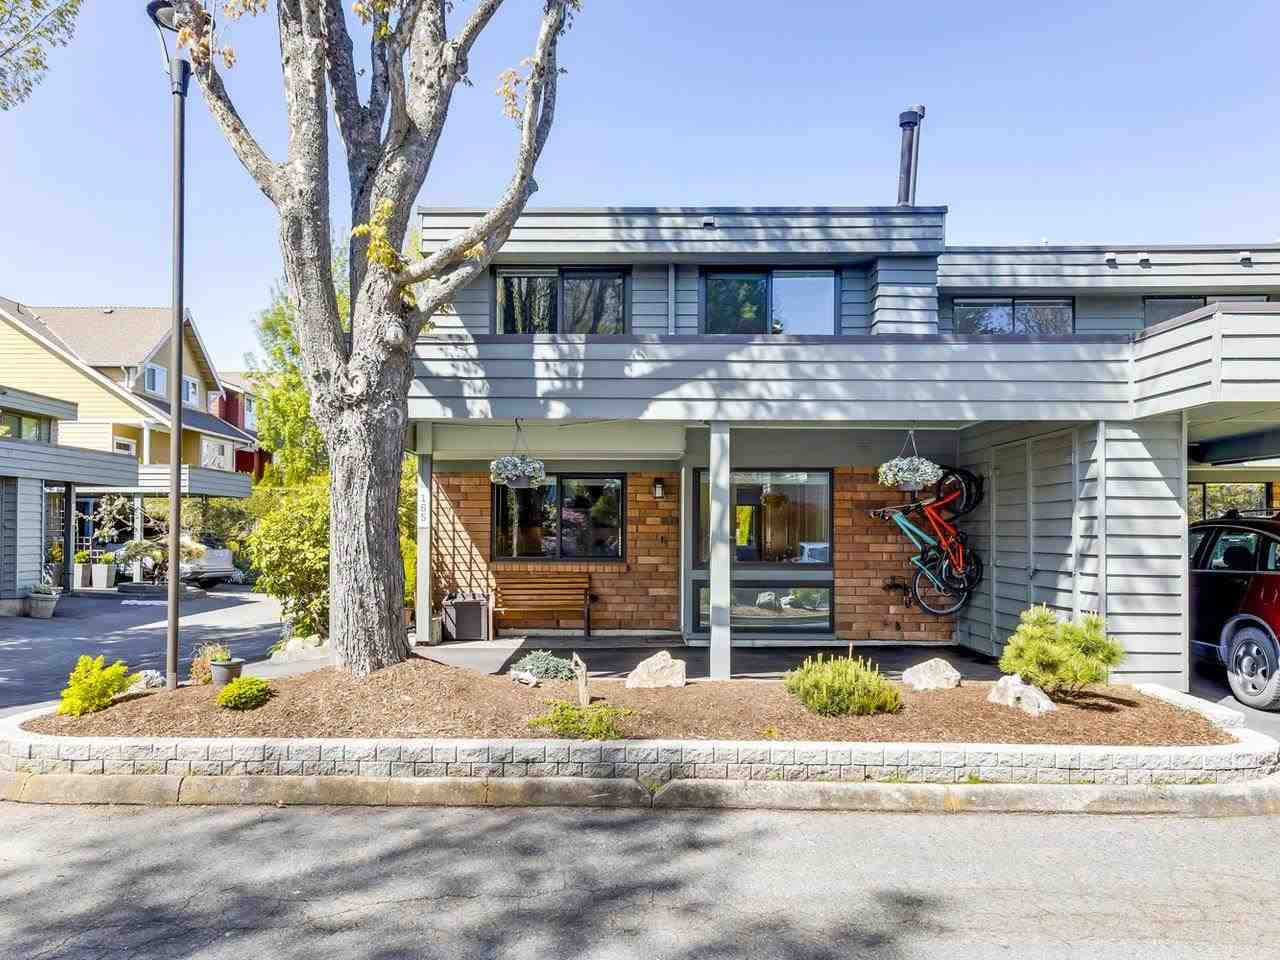 165 3031 WILLIAMS ROAD - Seafair Townhouse for sale, 4 Bedrooms (R2576803)